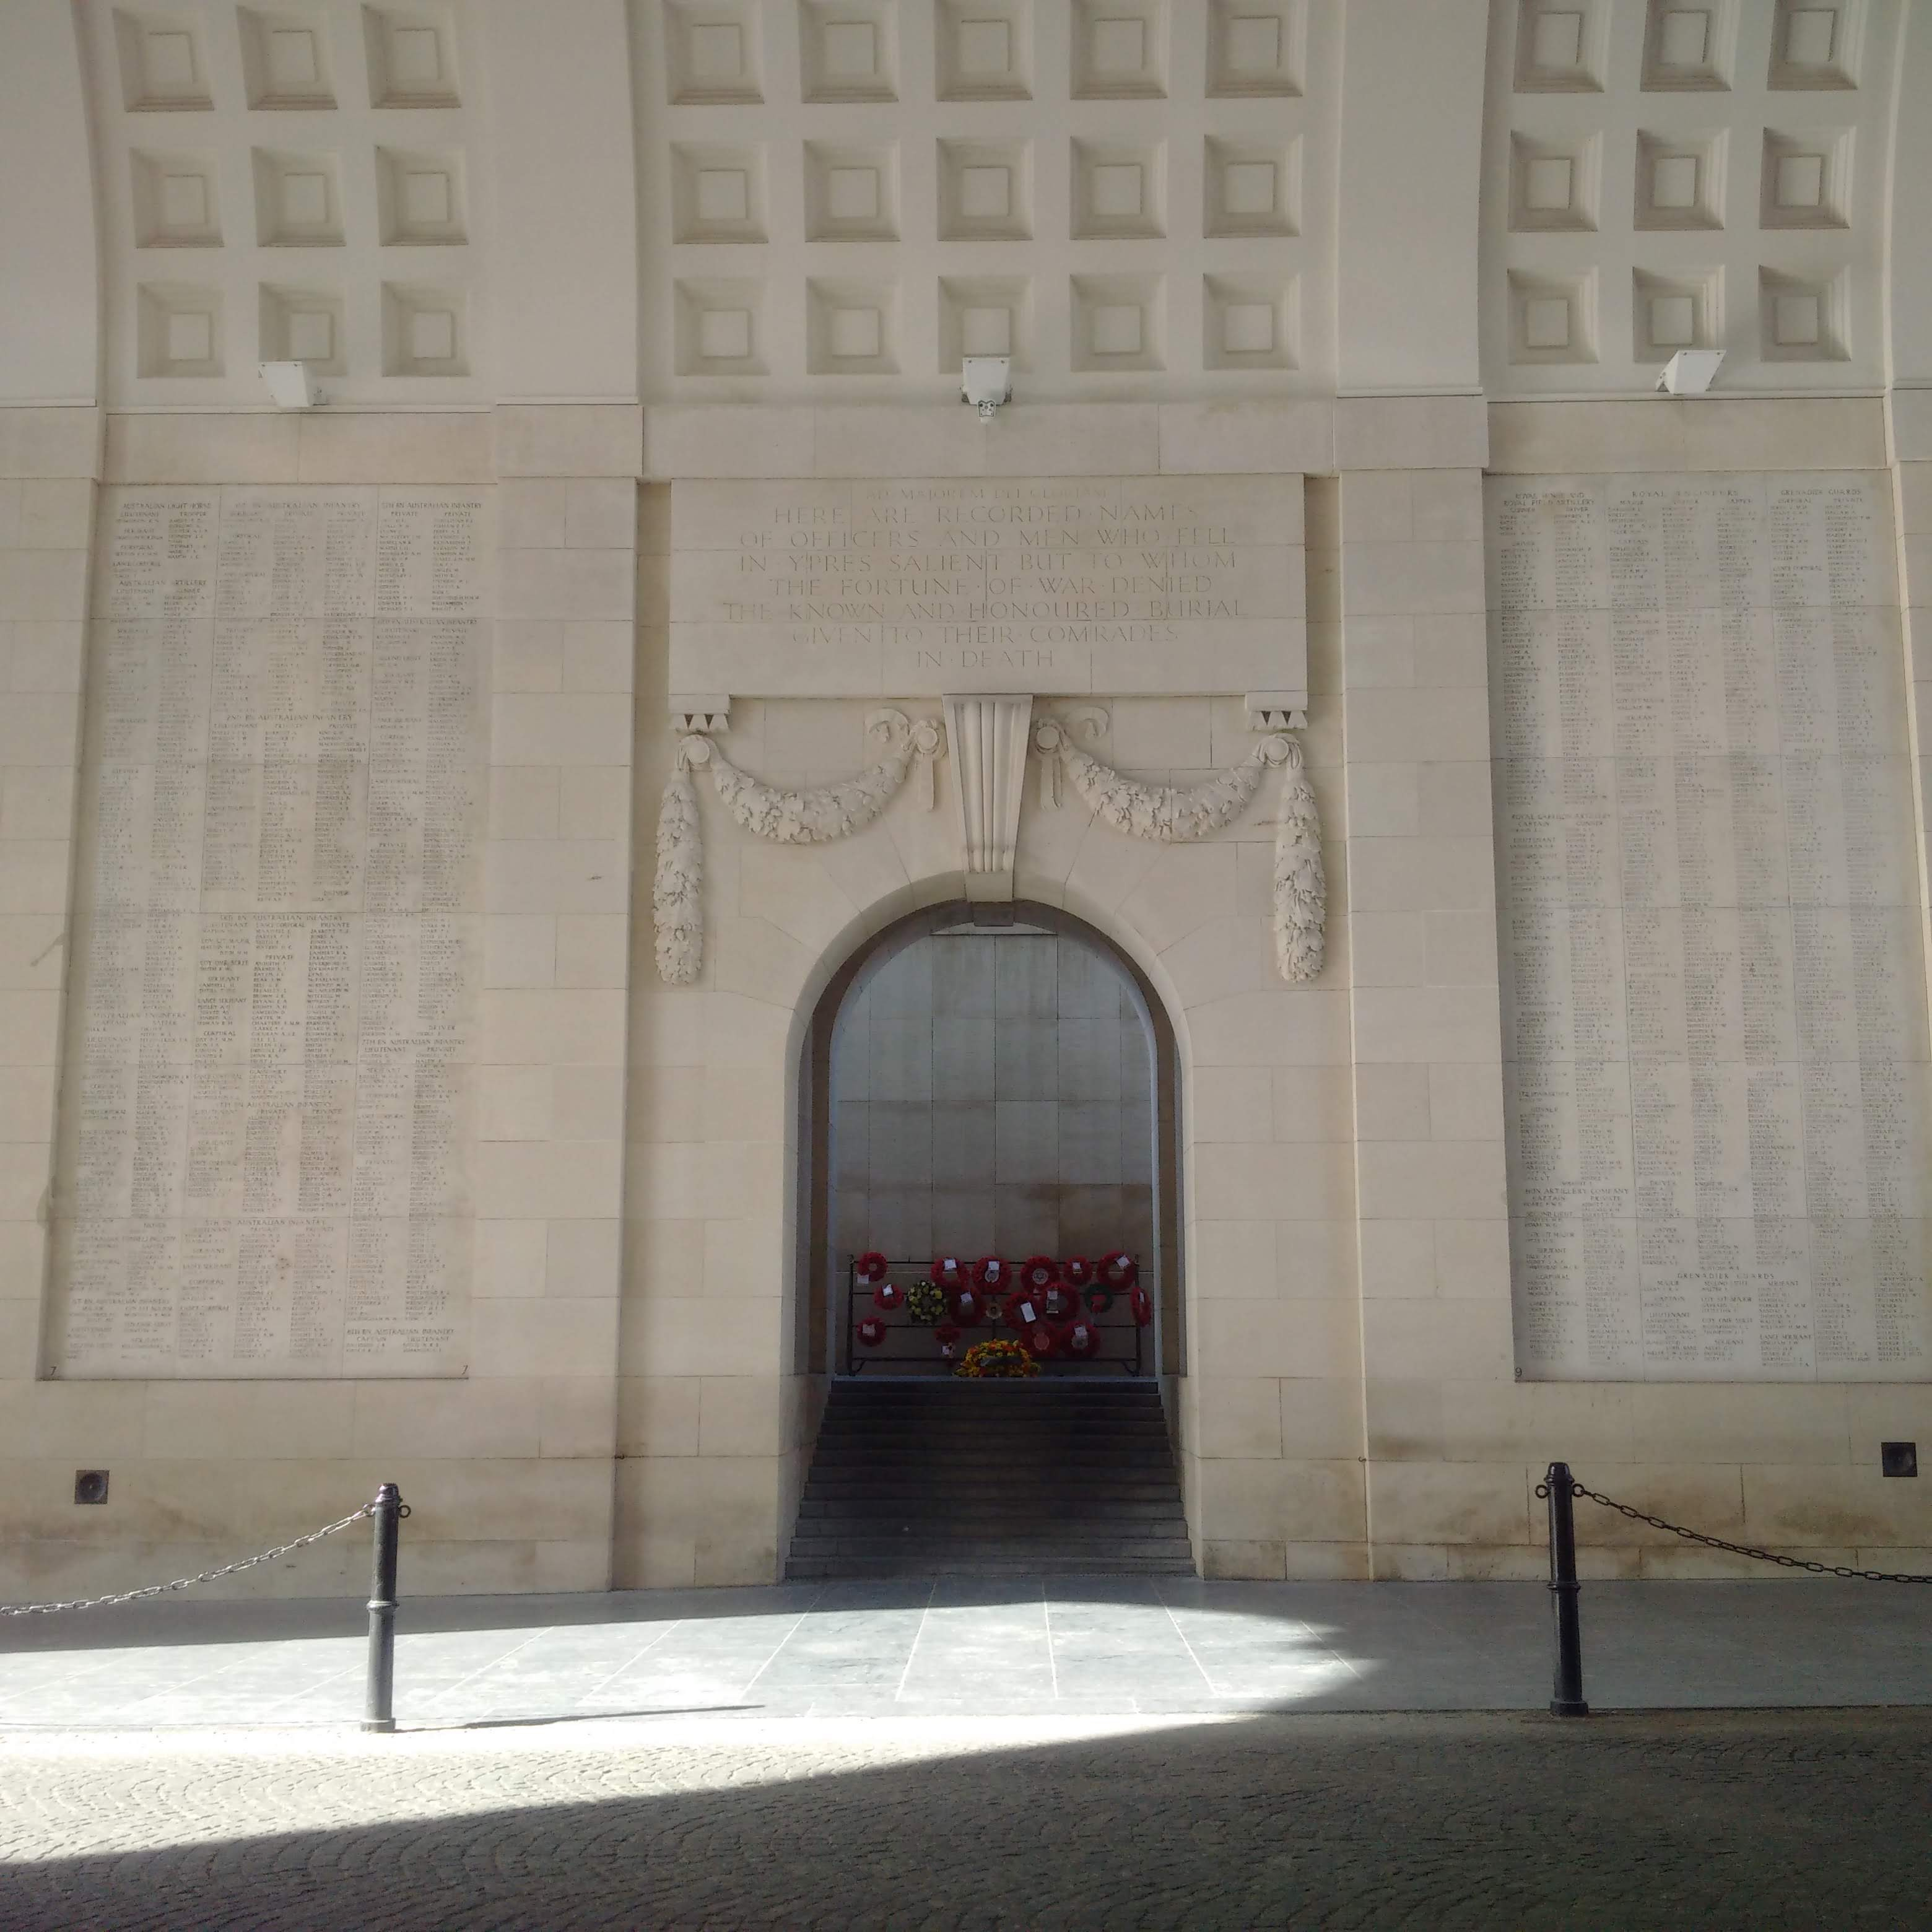 Wreathes laid at the Last Post Ceremony at the Menin Gate in Ypres, viewed through the archway inside the gate